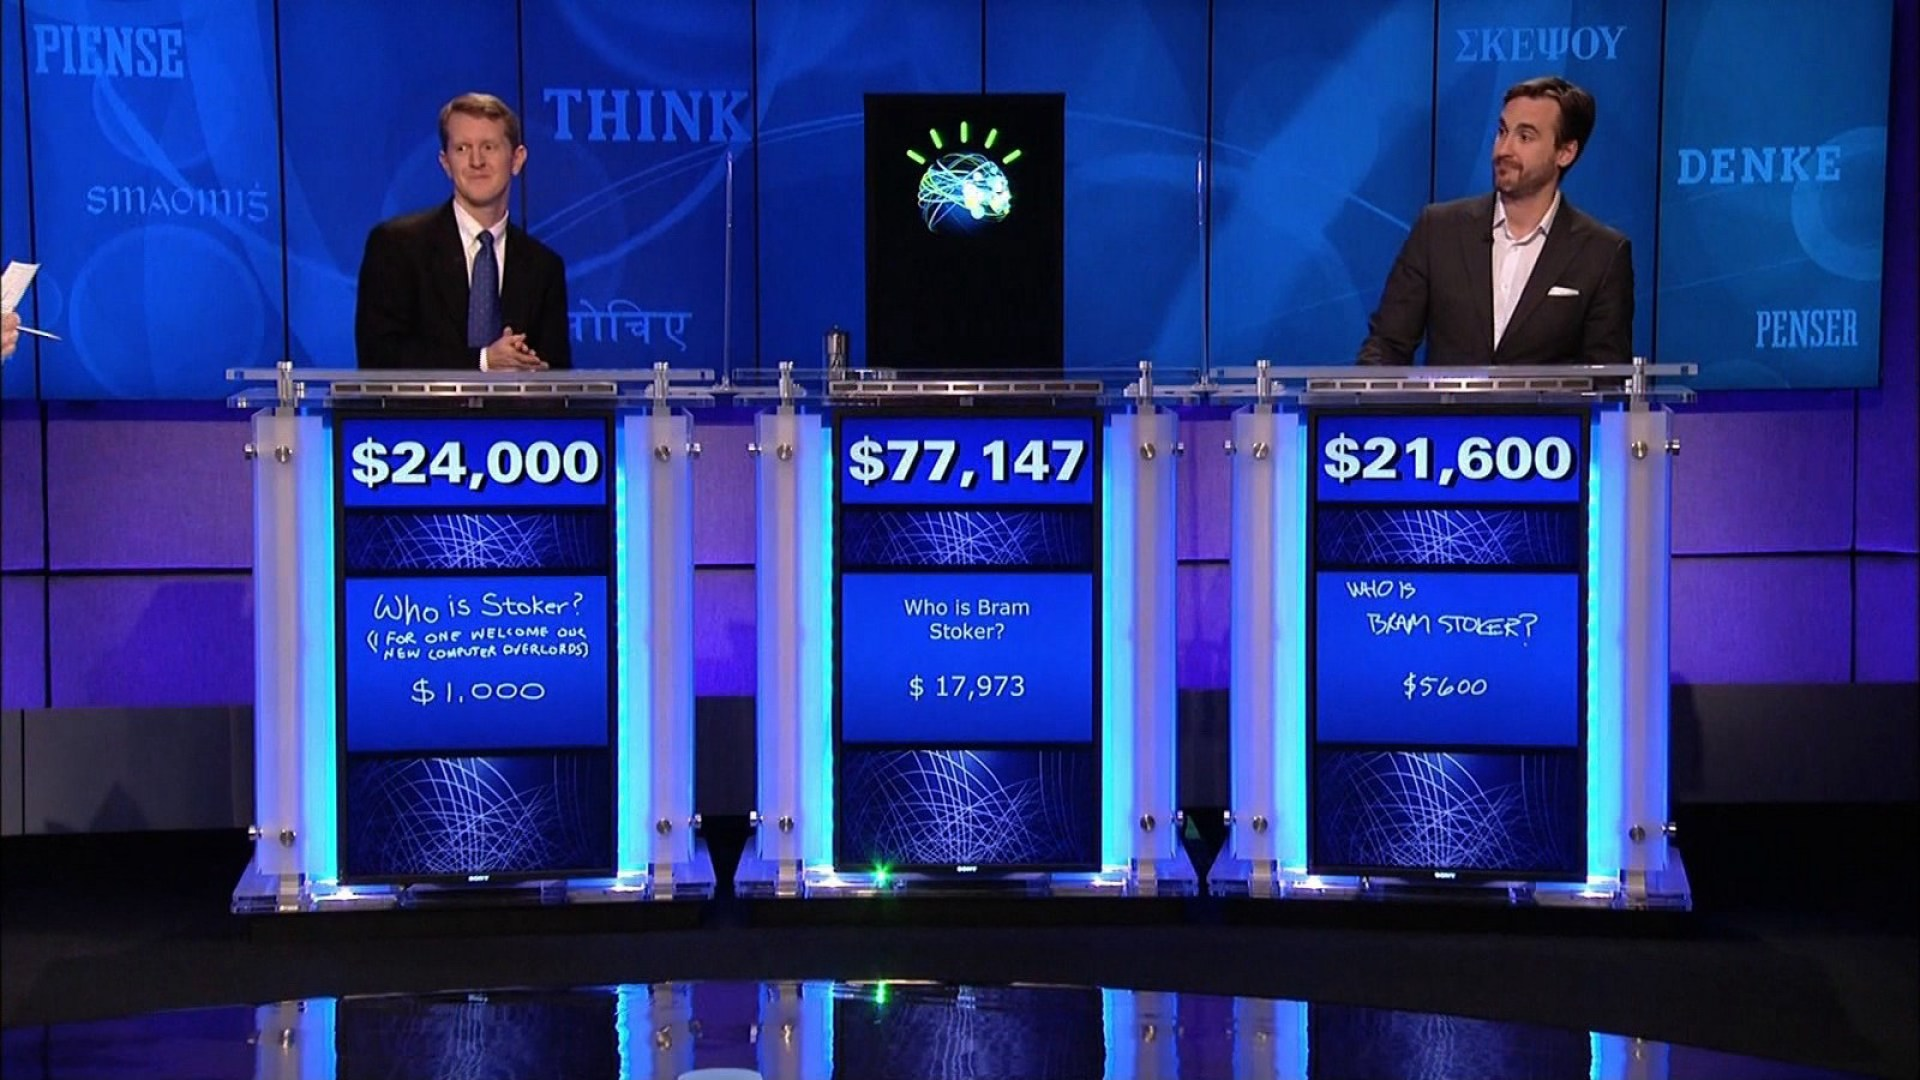 The Watson computer on the gameshow, Jeopardy. Credit: IBM